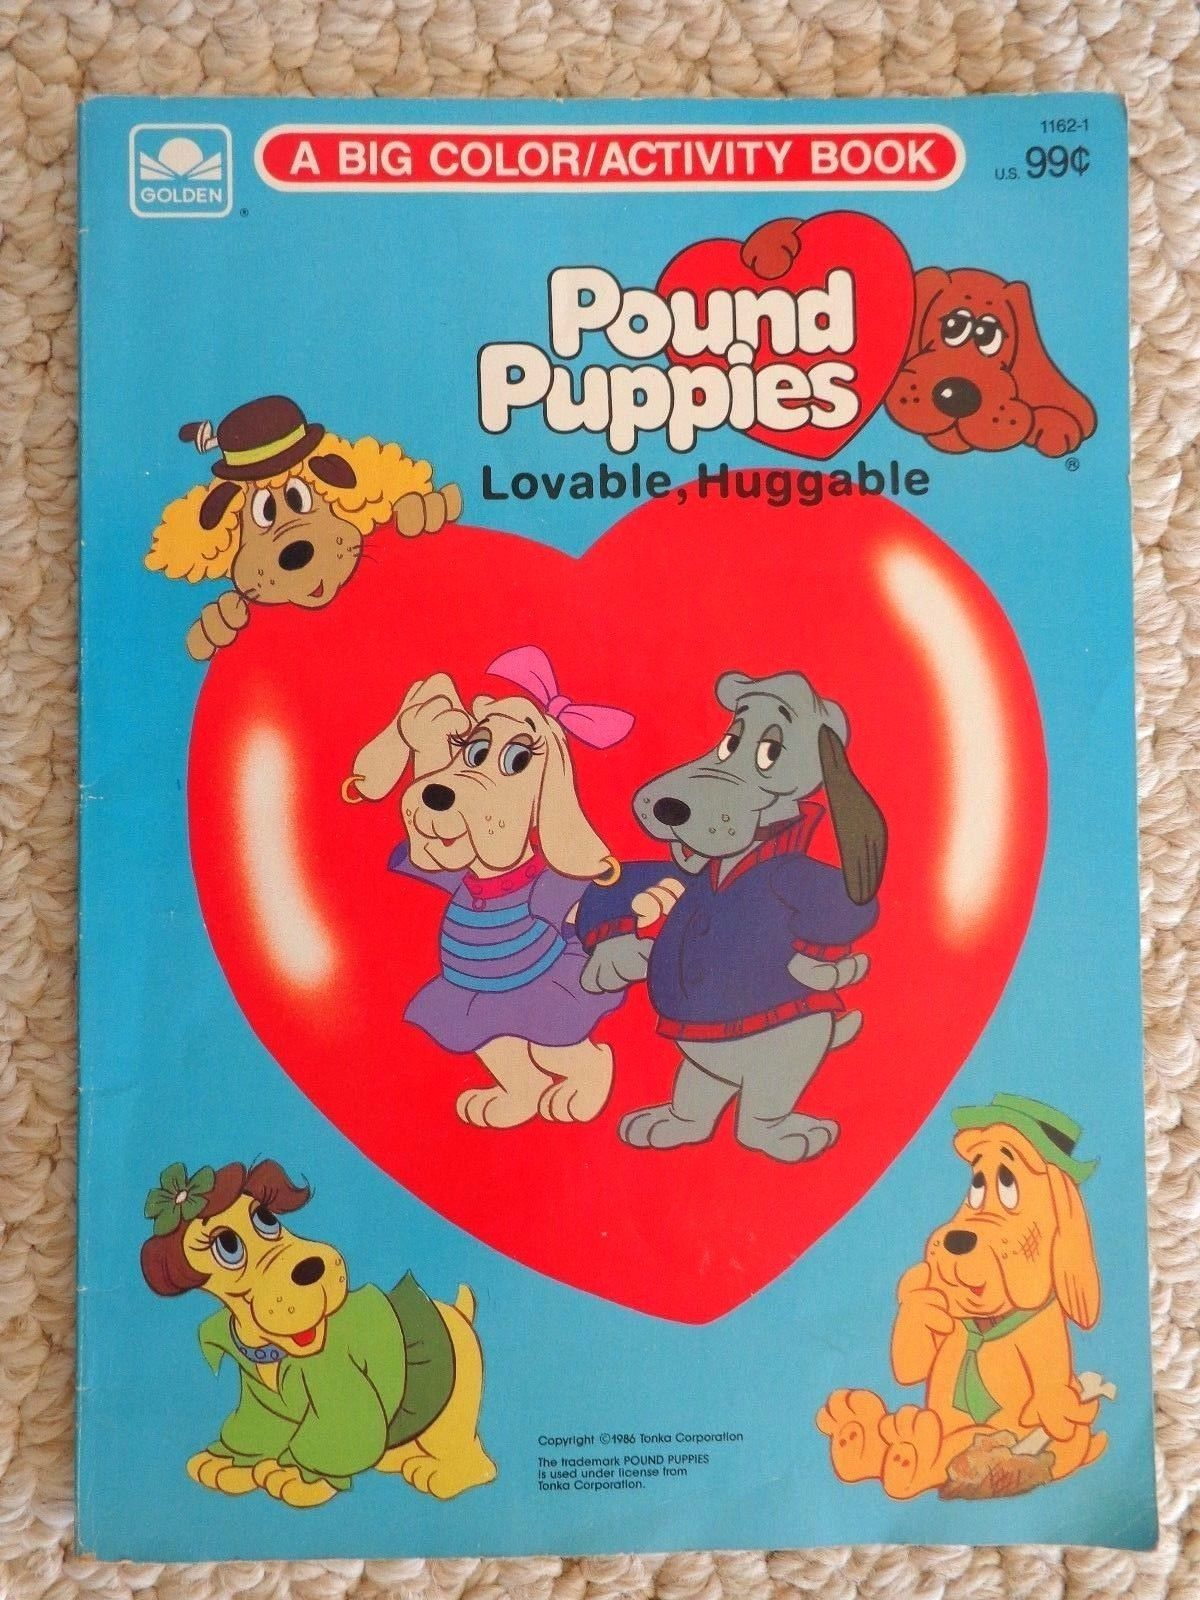 Book: Pound Puppies a Big Color/Activity Book. Copyright 1986 (#1511)